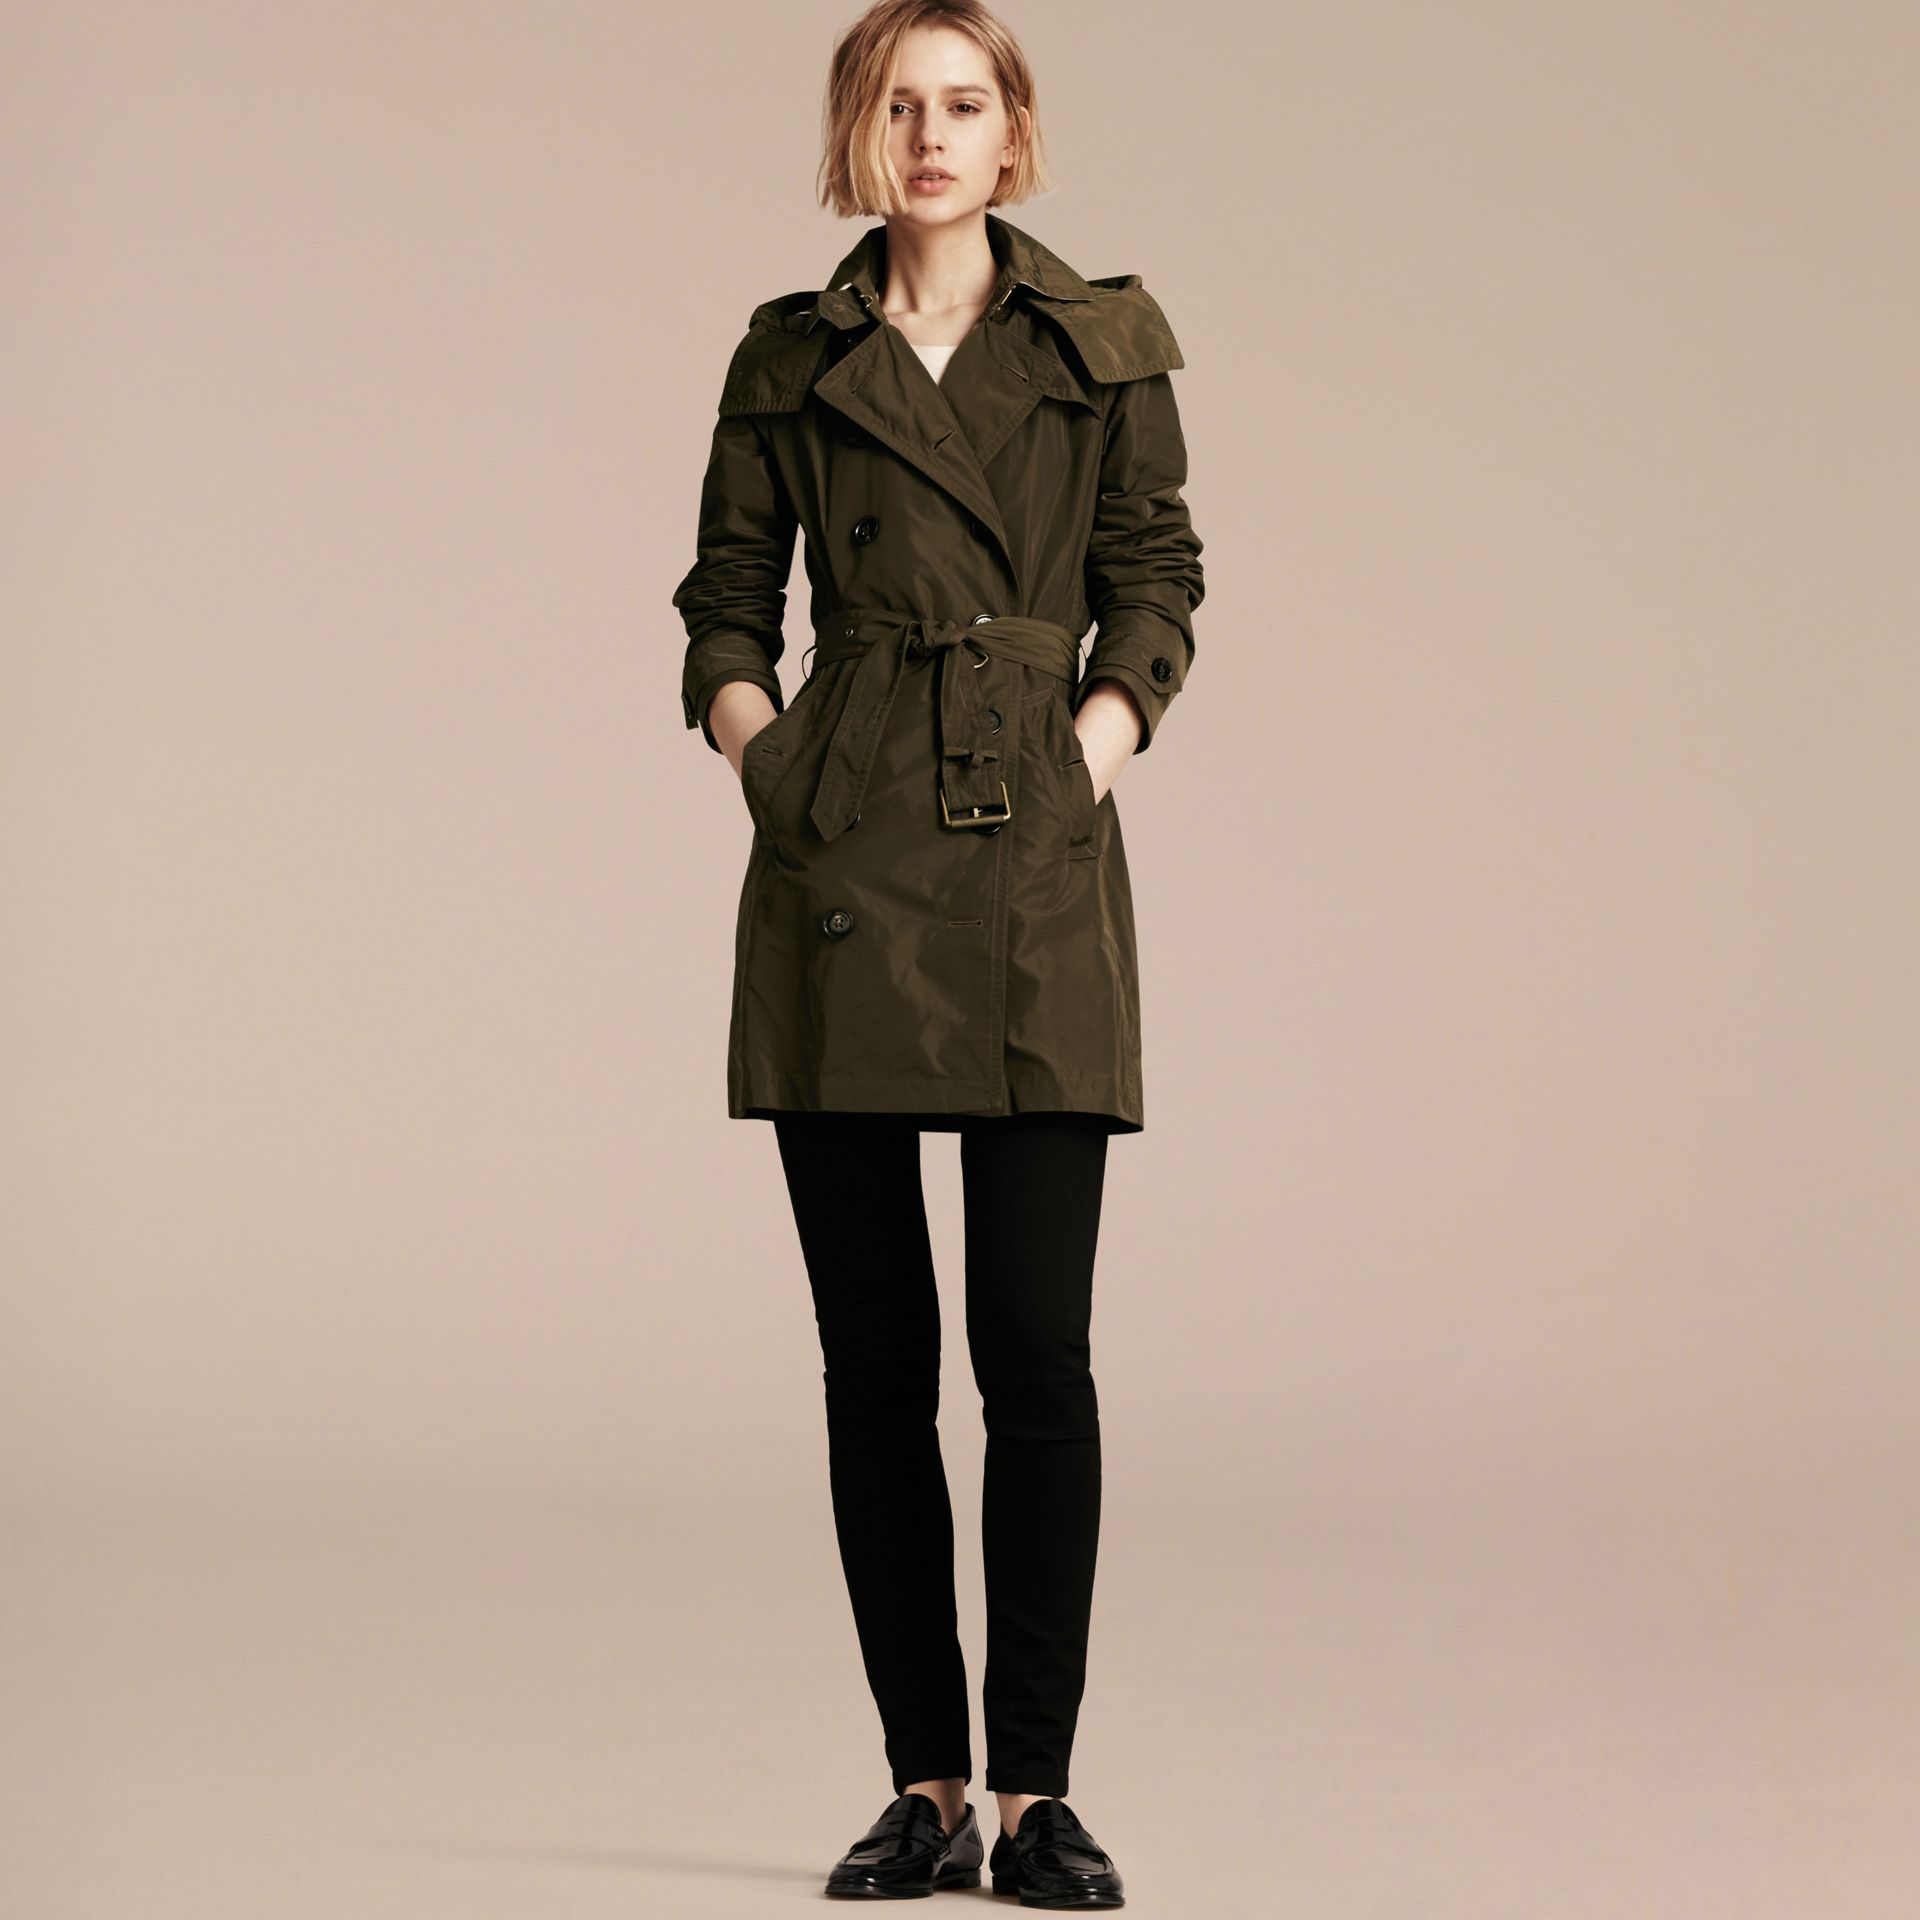 Taffeta Trench Coat with Detachable Hood in Dark Olive - Women | Burberry - gallery image 6